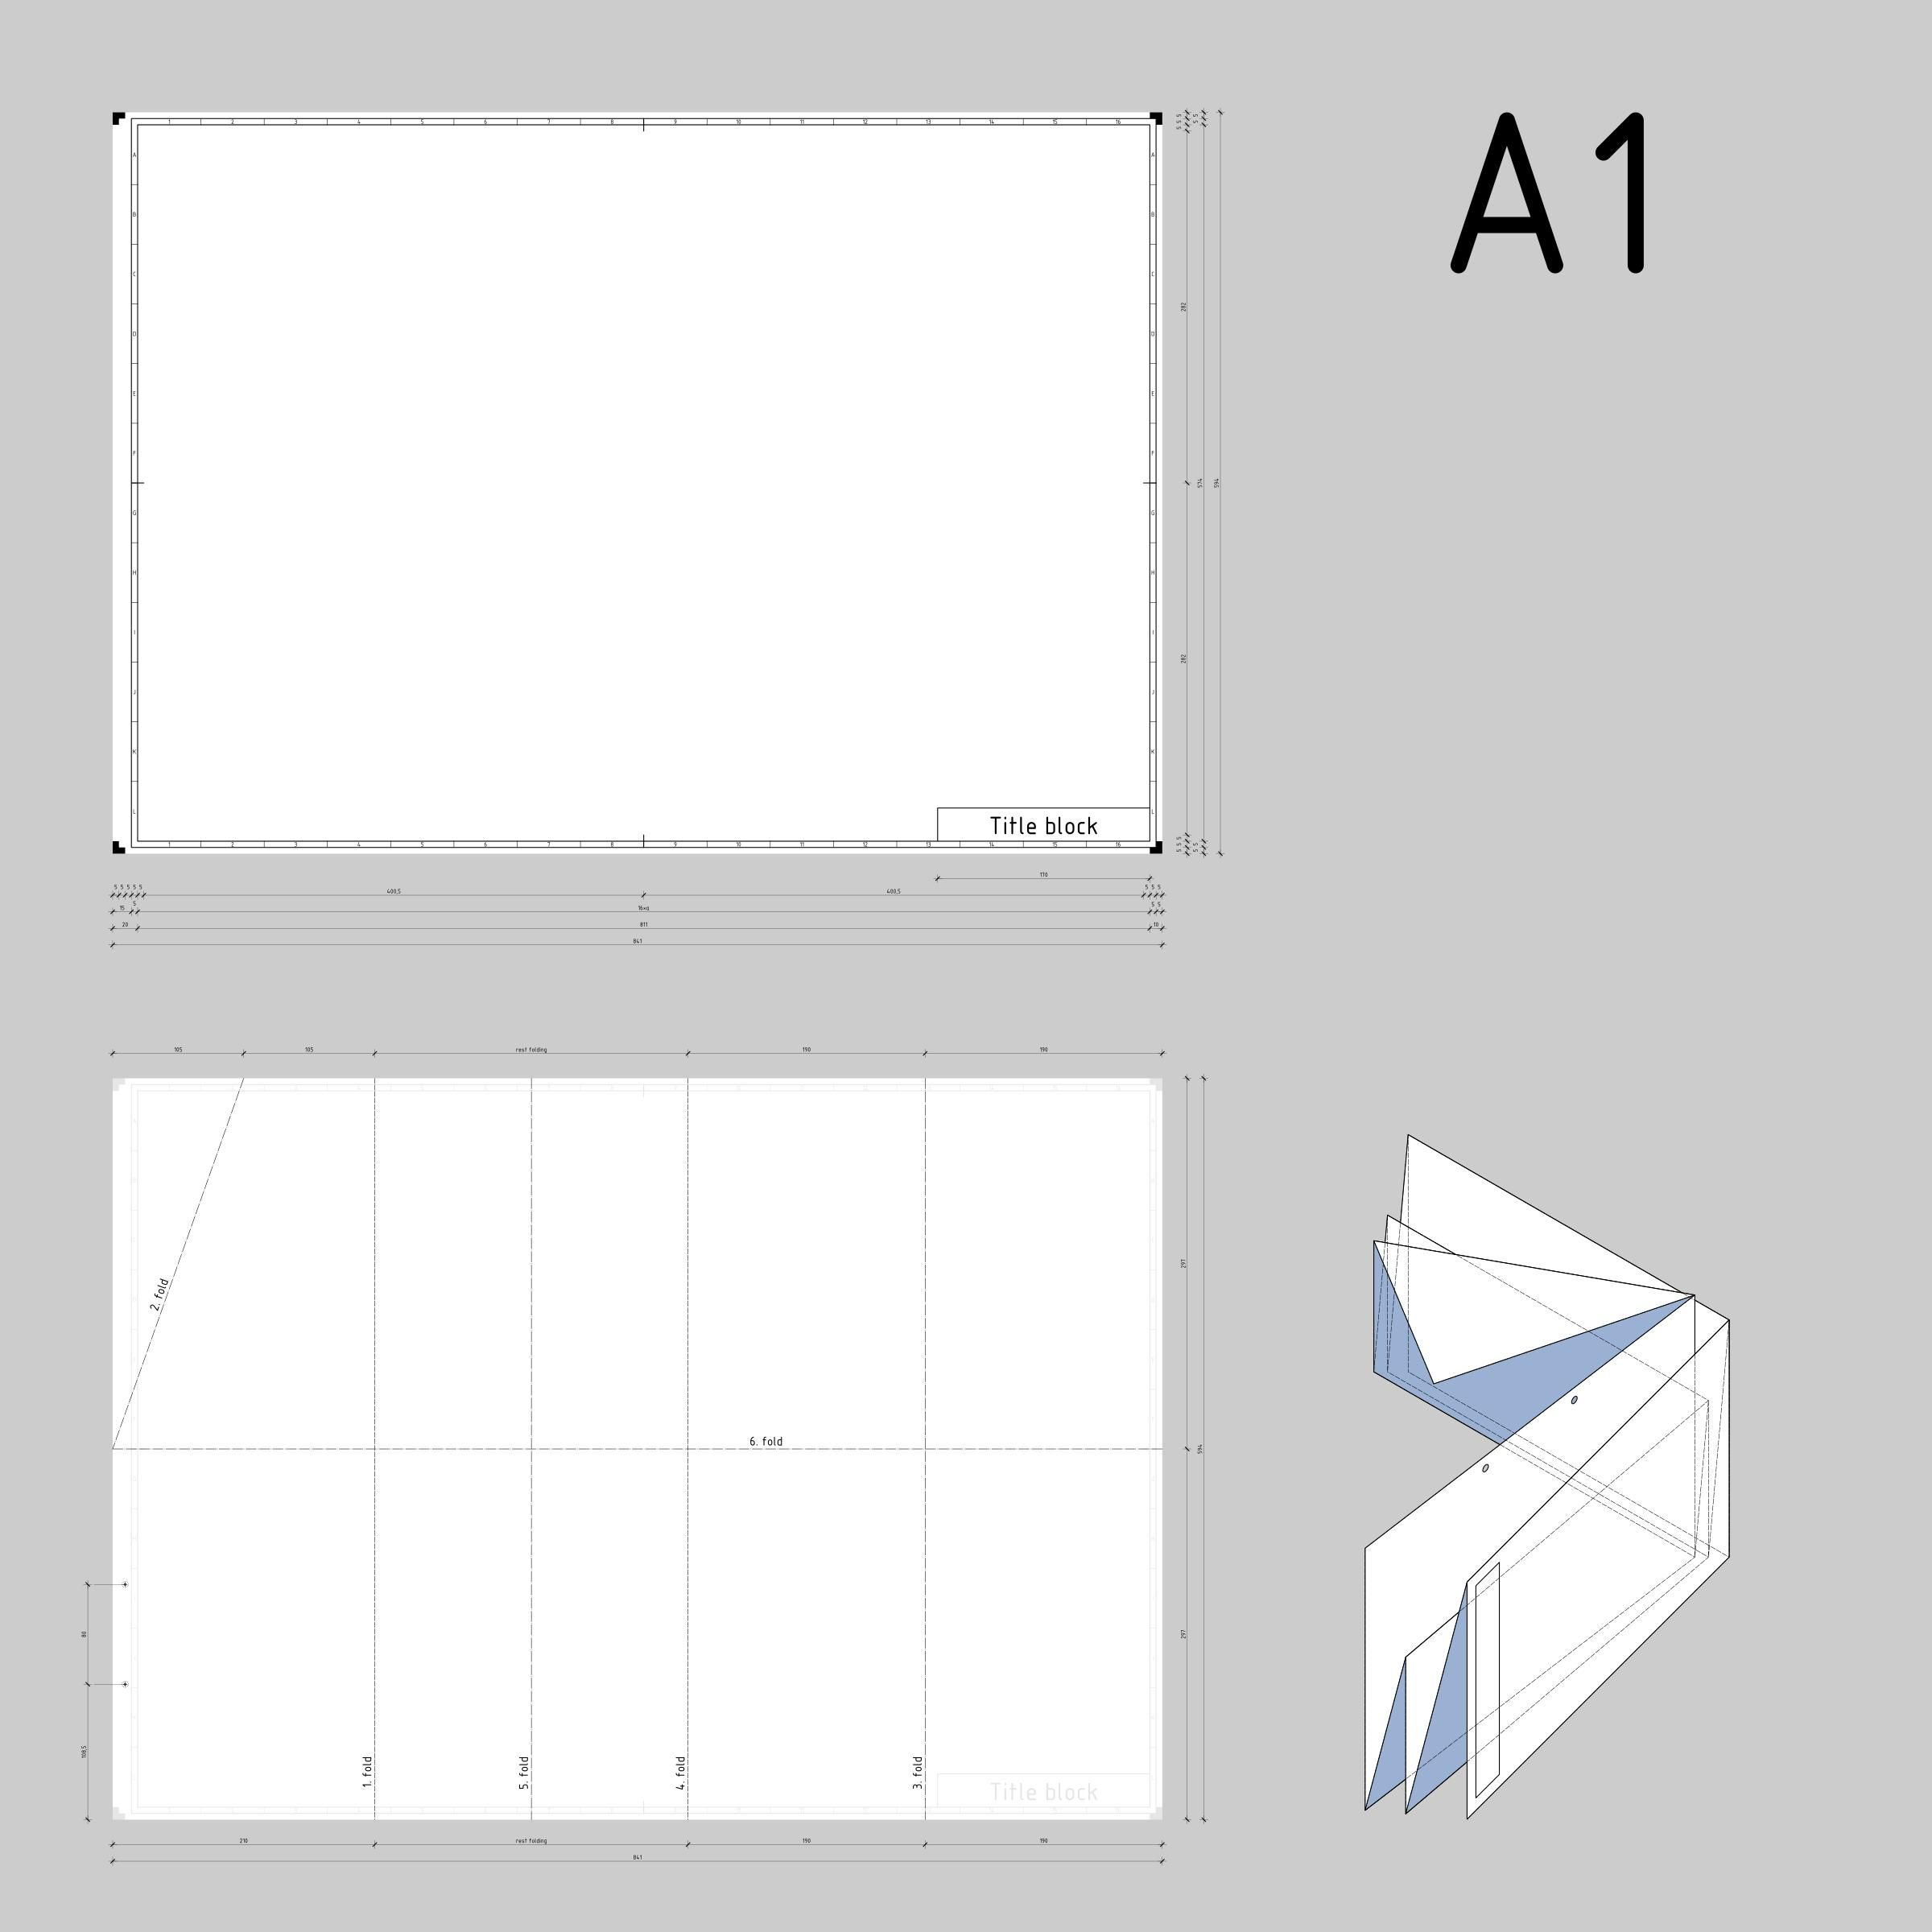 A A1 Din Din A1 Technical Drawing Format And Folding Folds Png Icons